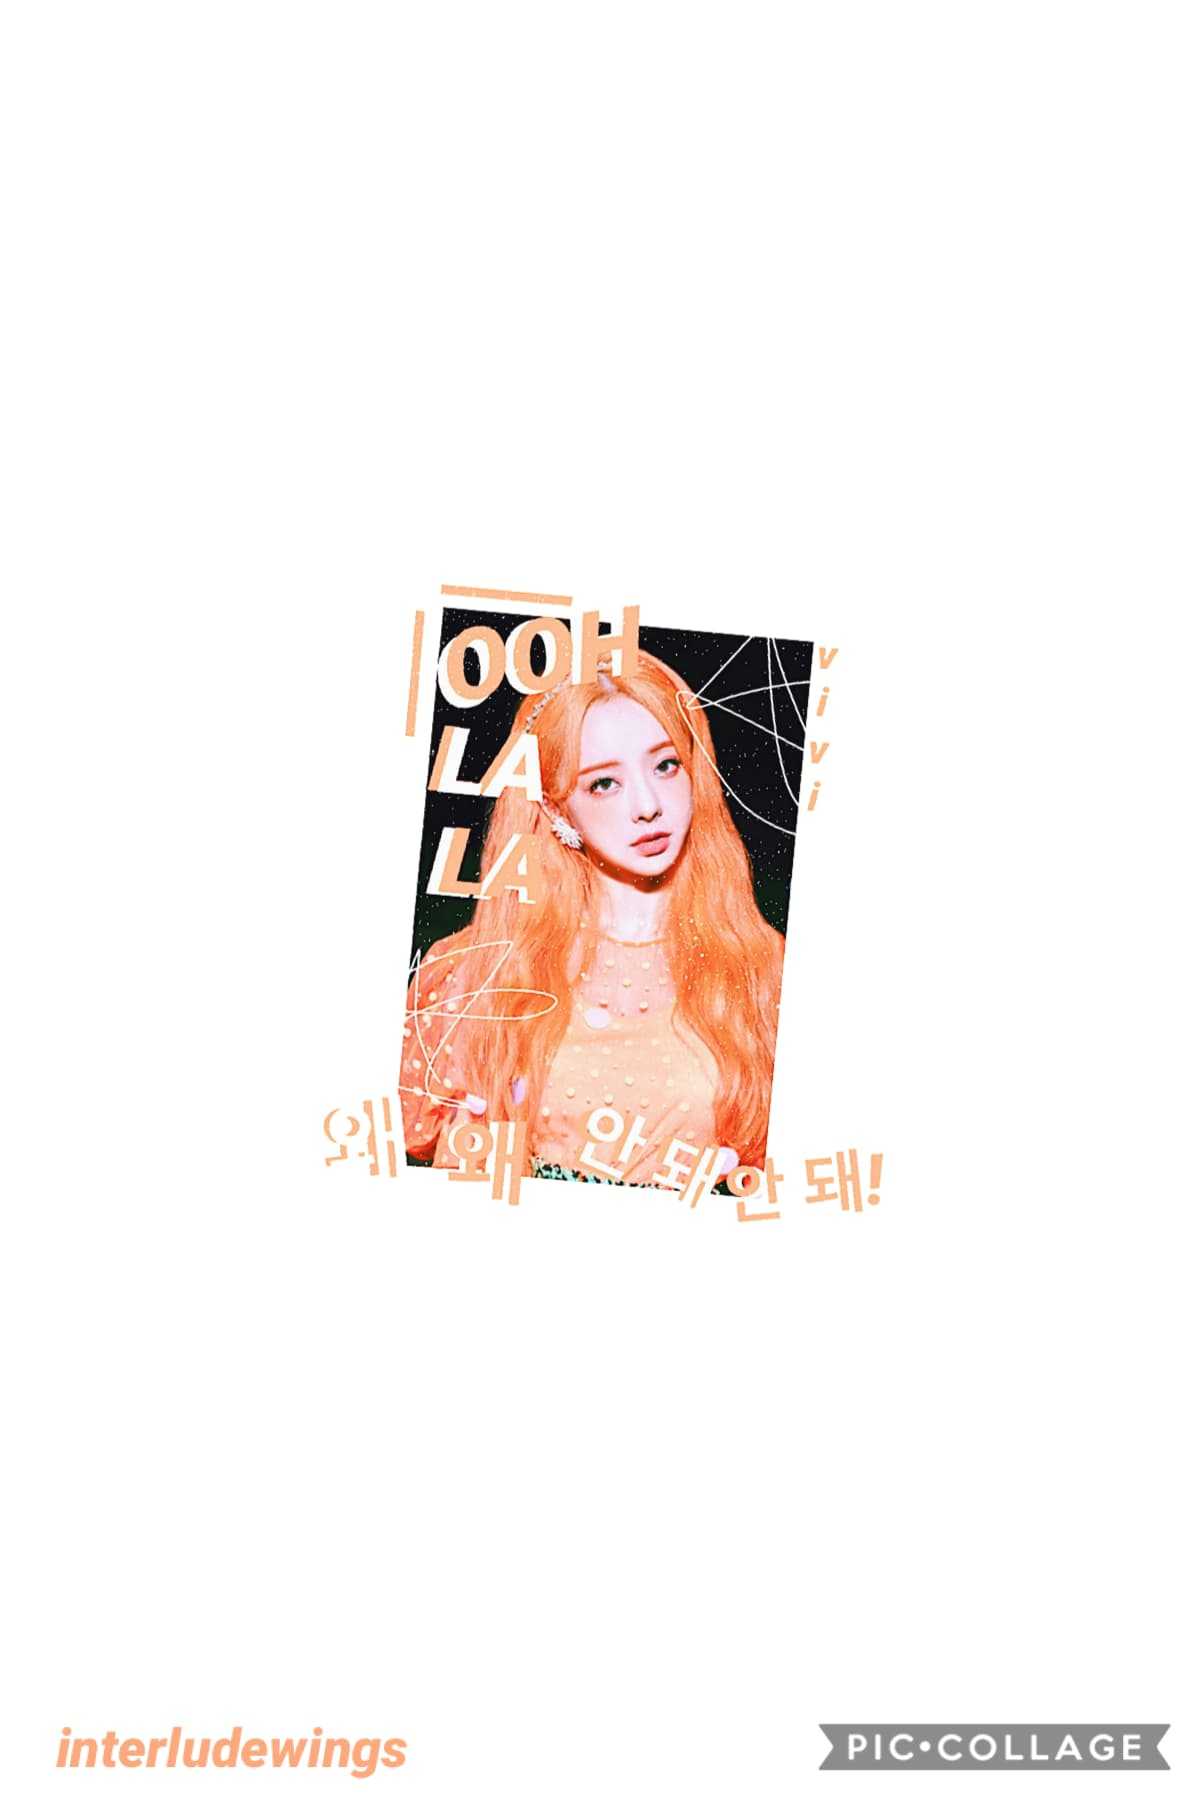 🍊 open 🍊 vivi~loona  i can't believe i'm posting more than one time in a month lol school has really been taking a toll on me lately 🥴